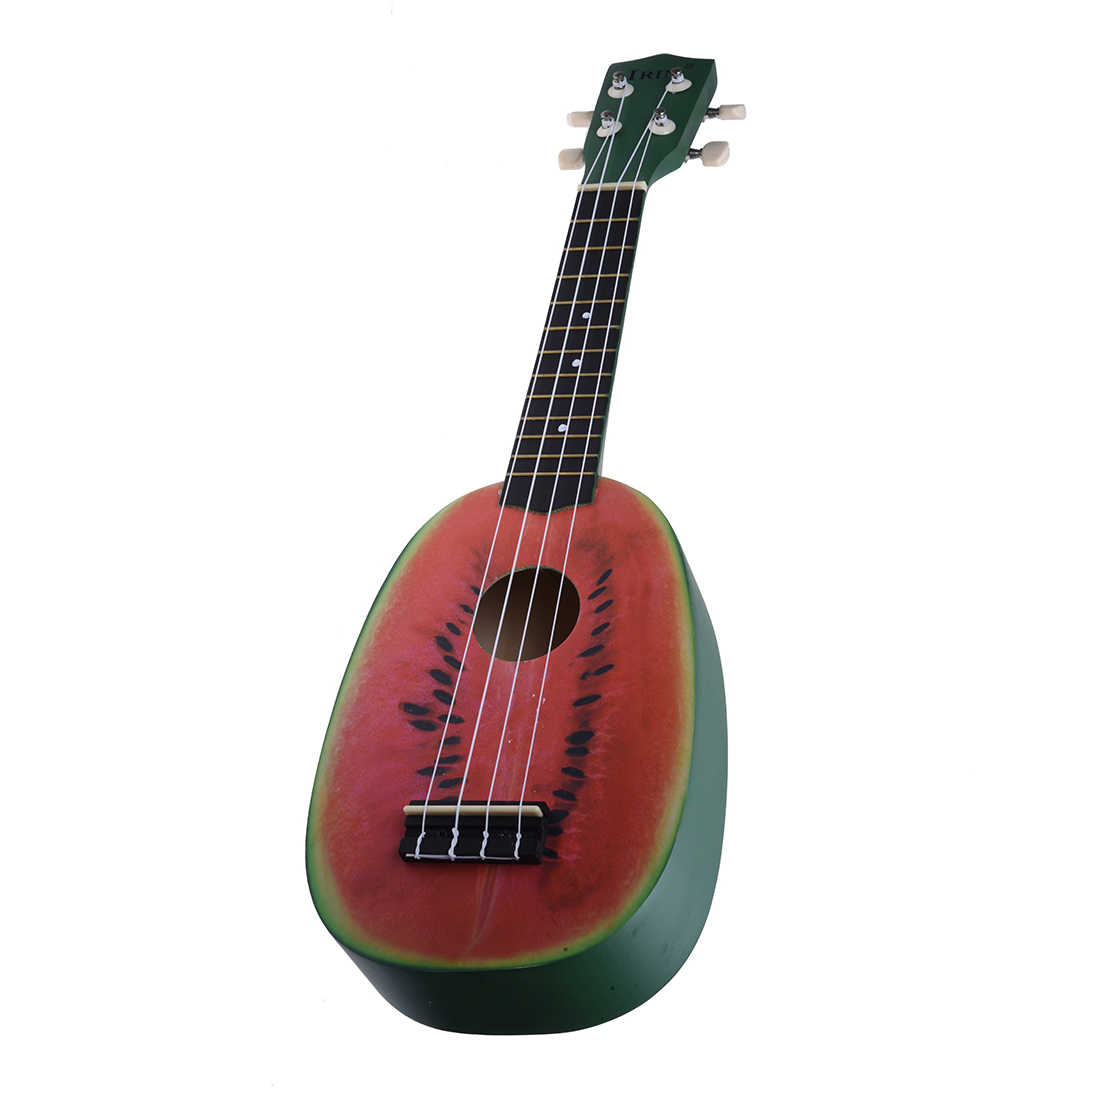 New IRIN 21 Ukelele 4 Strings Colorful Lovely Watermelon / Kiwi Basswood Stringed Musical Instrument Christmas Gift Present